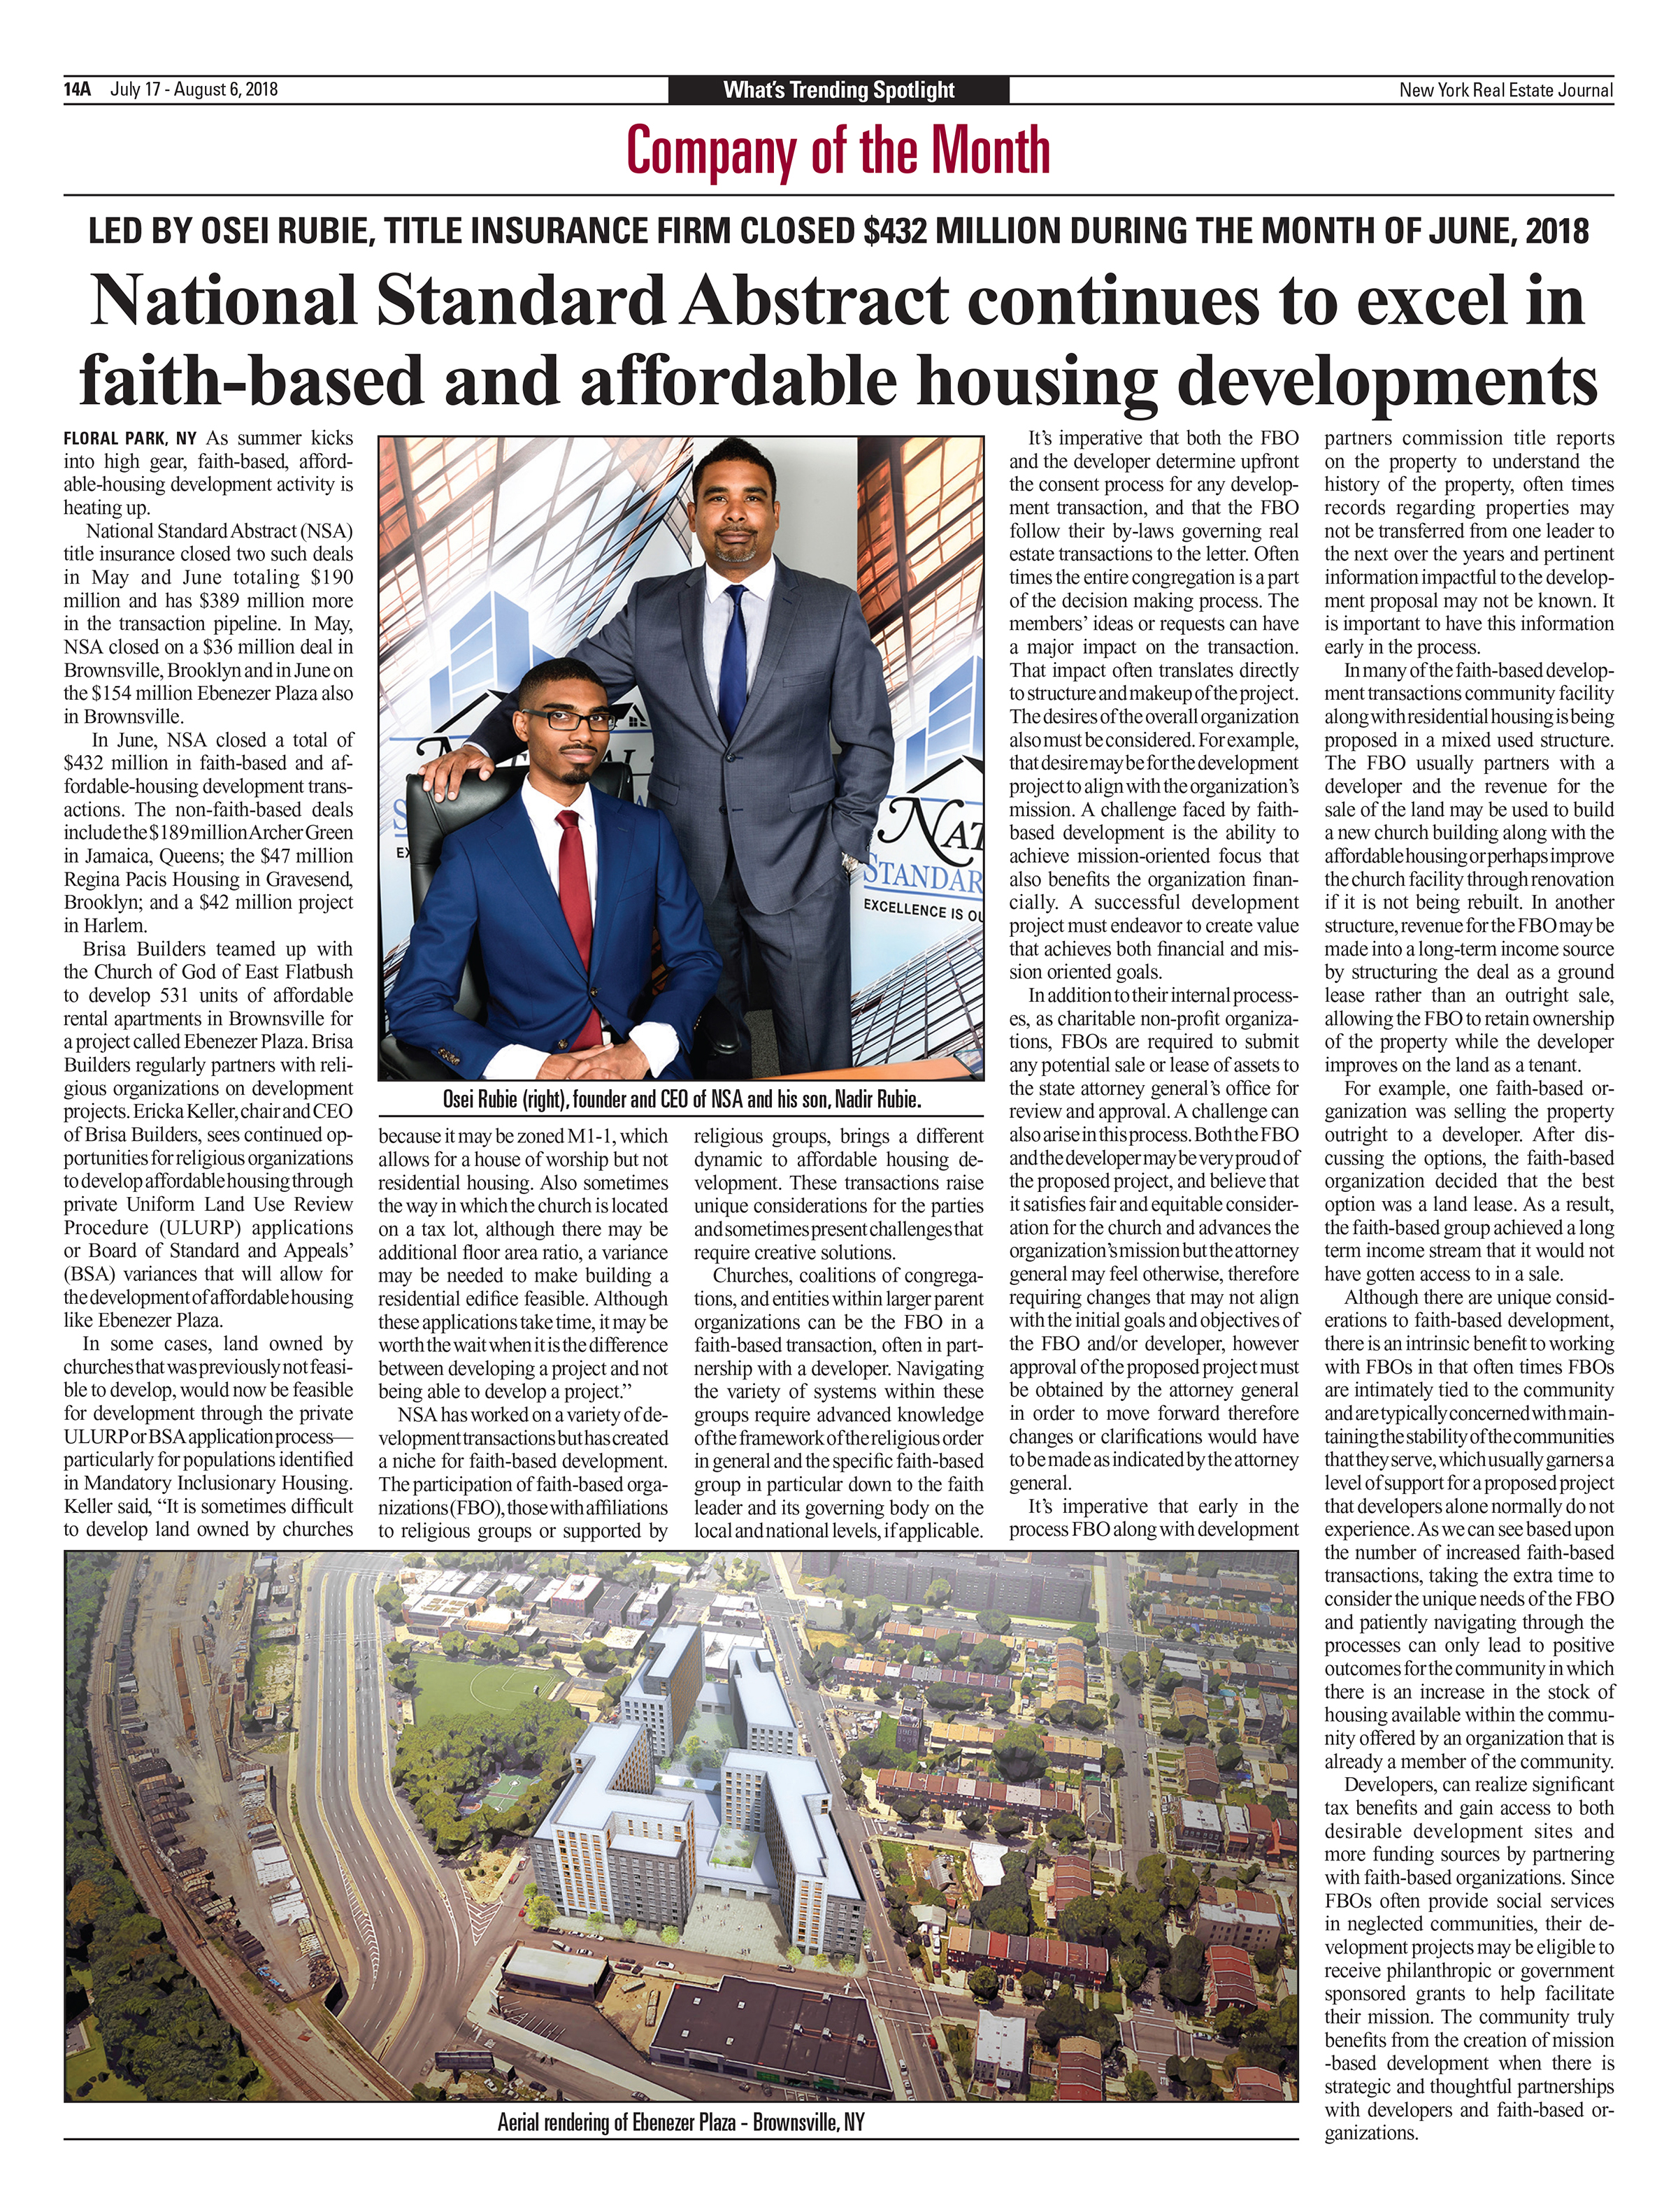 Cover Story Article July 19th 2018 NYREJ.jpg